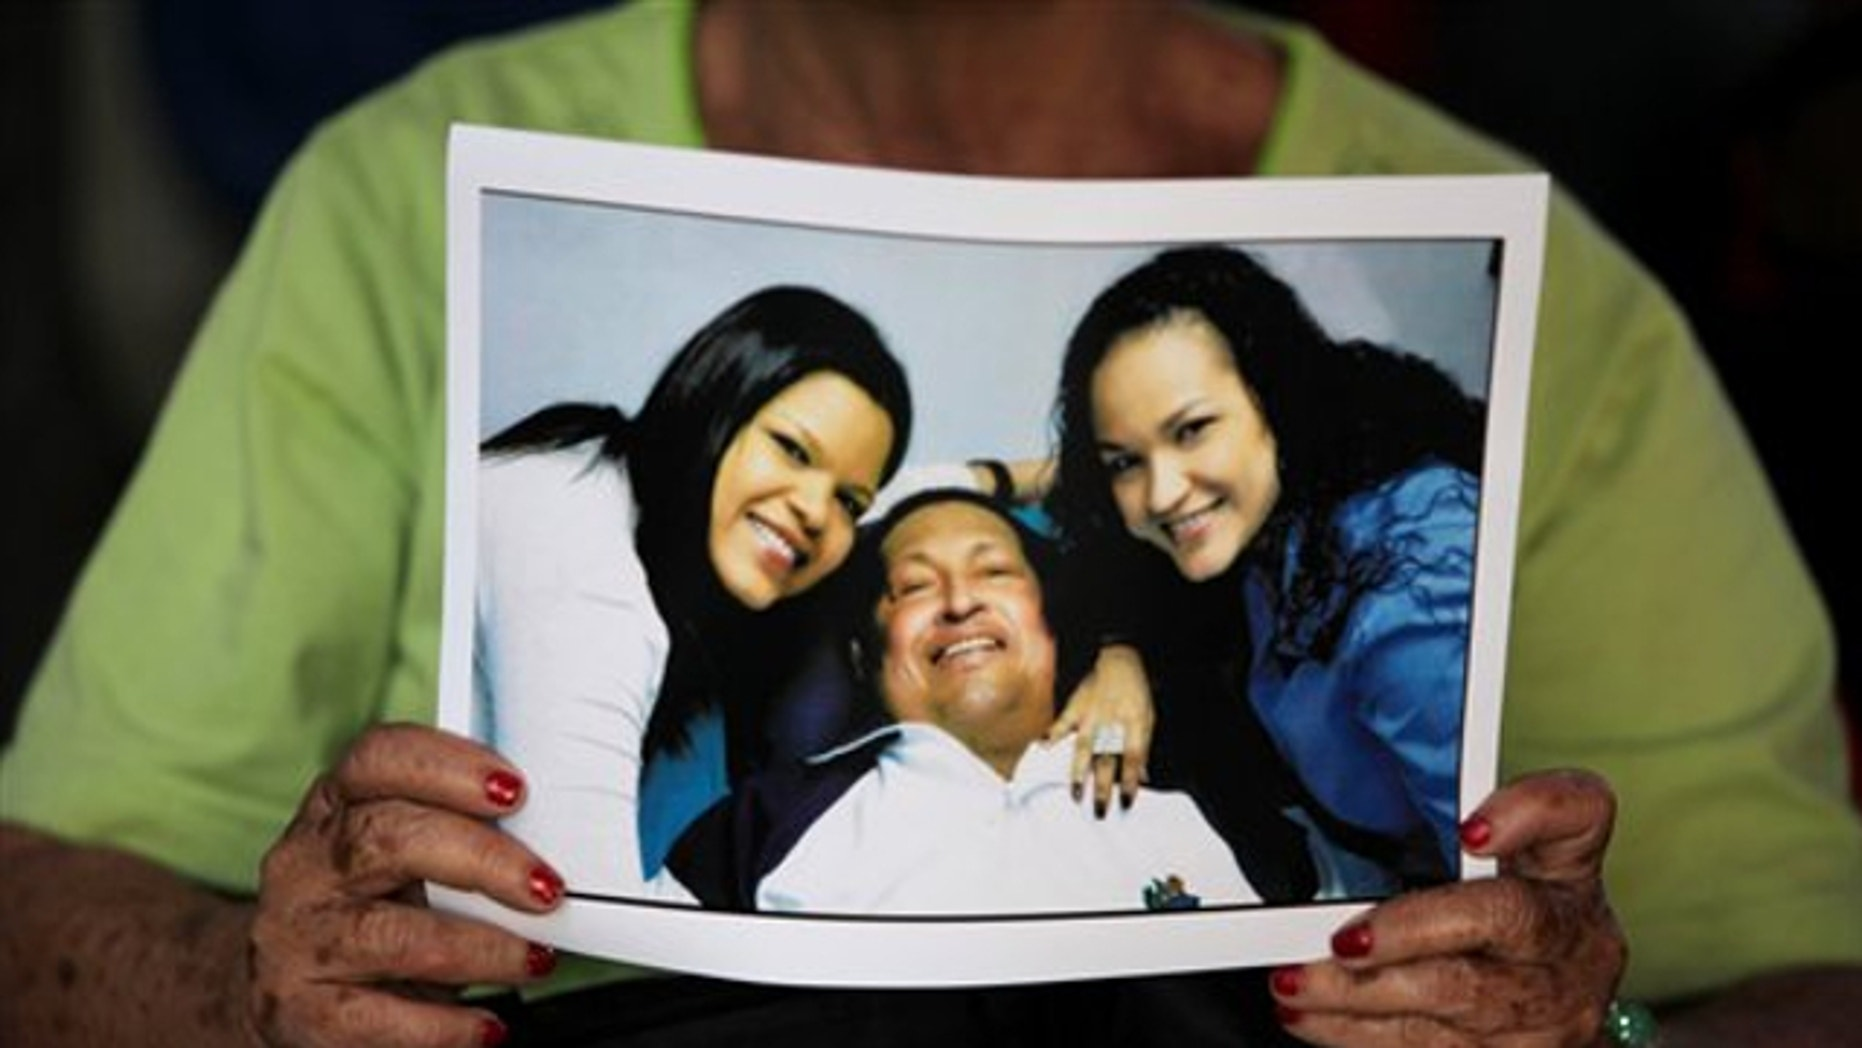 Feb. 15, 2013: A woman holds a newly purchased copy of a photo released by the government, showing Venezuela's President Hugo Chavez with two of his daughters, in Caracas,Venezuela.